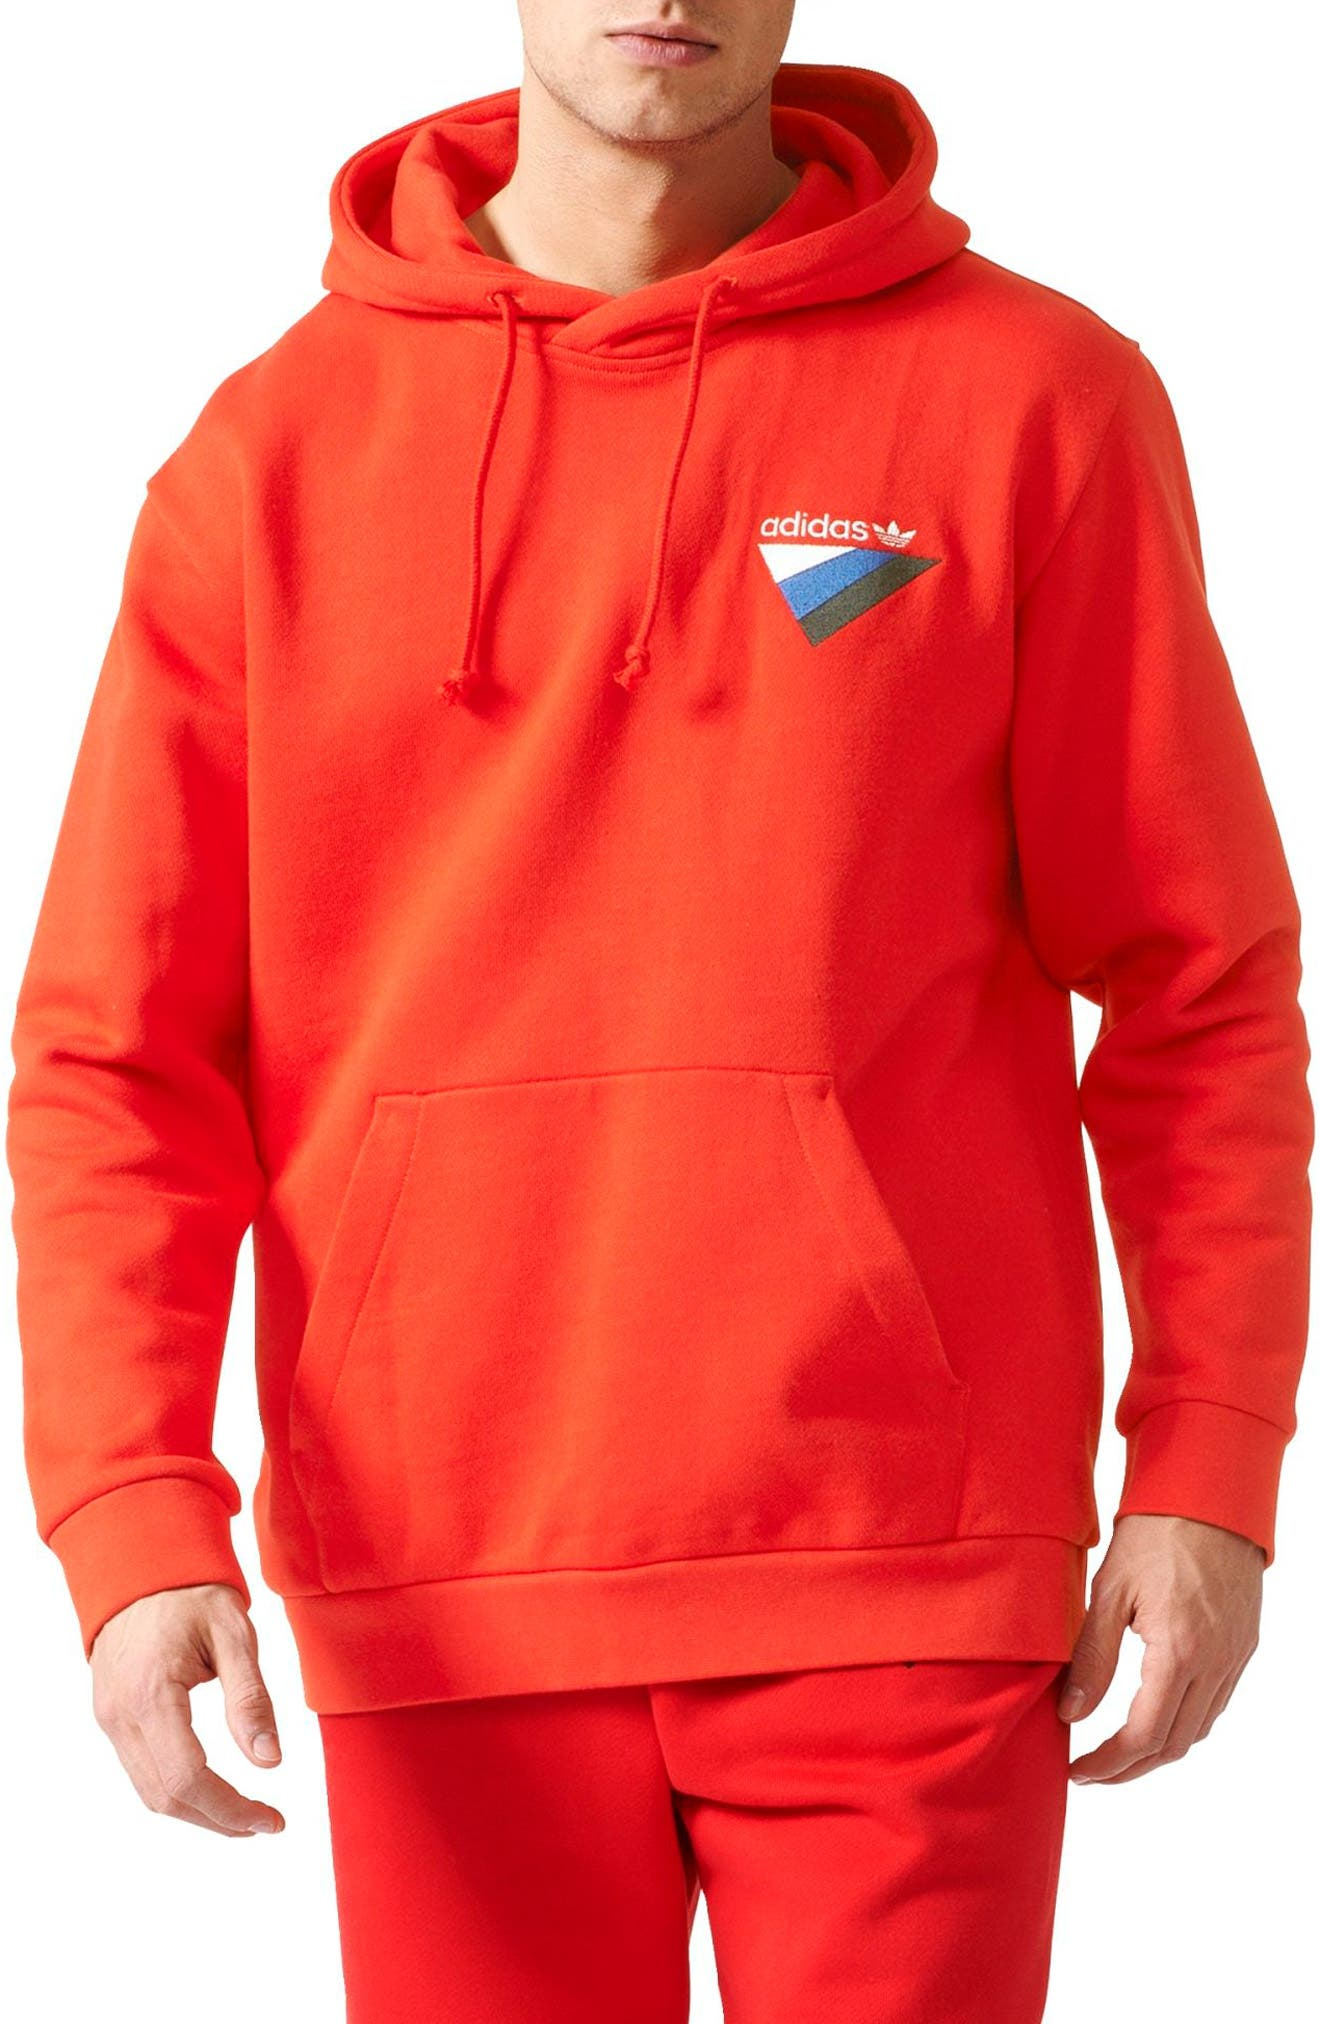 Originals Anichkov Hoodie,                             Main thumbnail 1, color,                             600